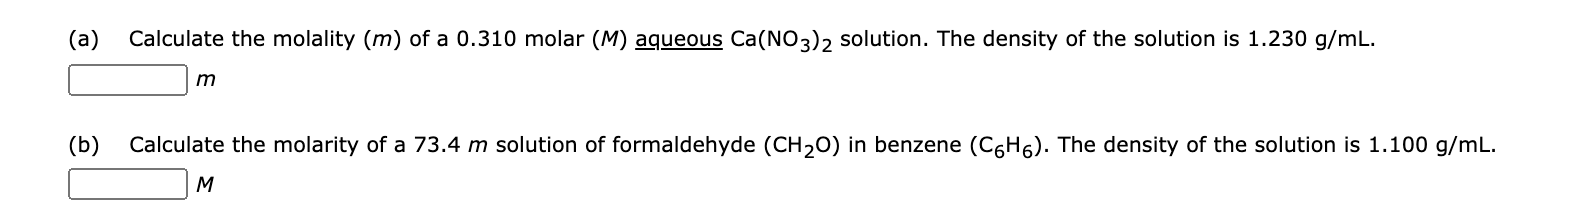 (a) Calculate the molality (m) of a 0.310 molar (M) aqueous Ca(NO3)2 solution. The density of the solution is 1.230 g/mL. m (b) Calculate the molarity of a 73.4 m solution of formaldehyde (CH20) in benzene (C6H6). The density of the solution is 1.100 g/mL. M